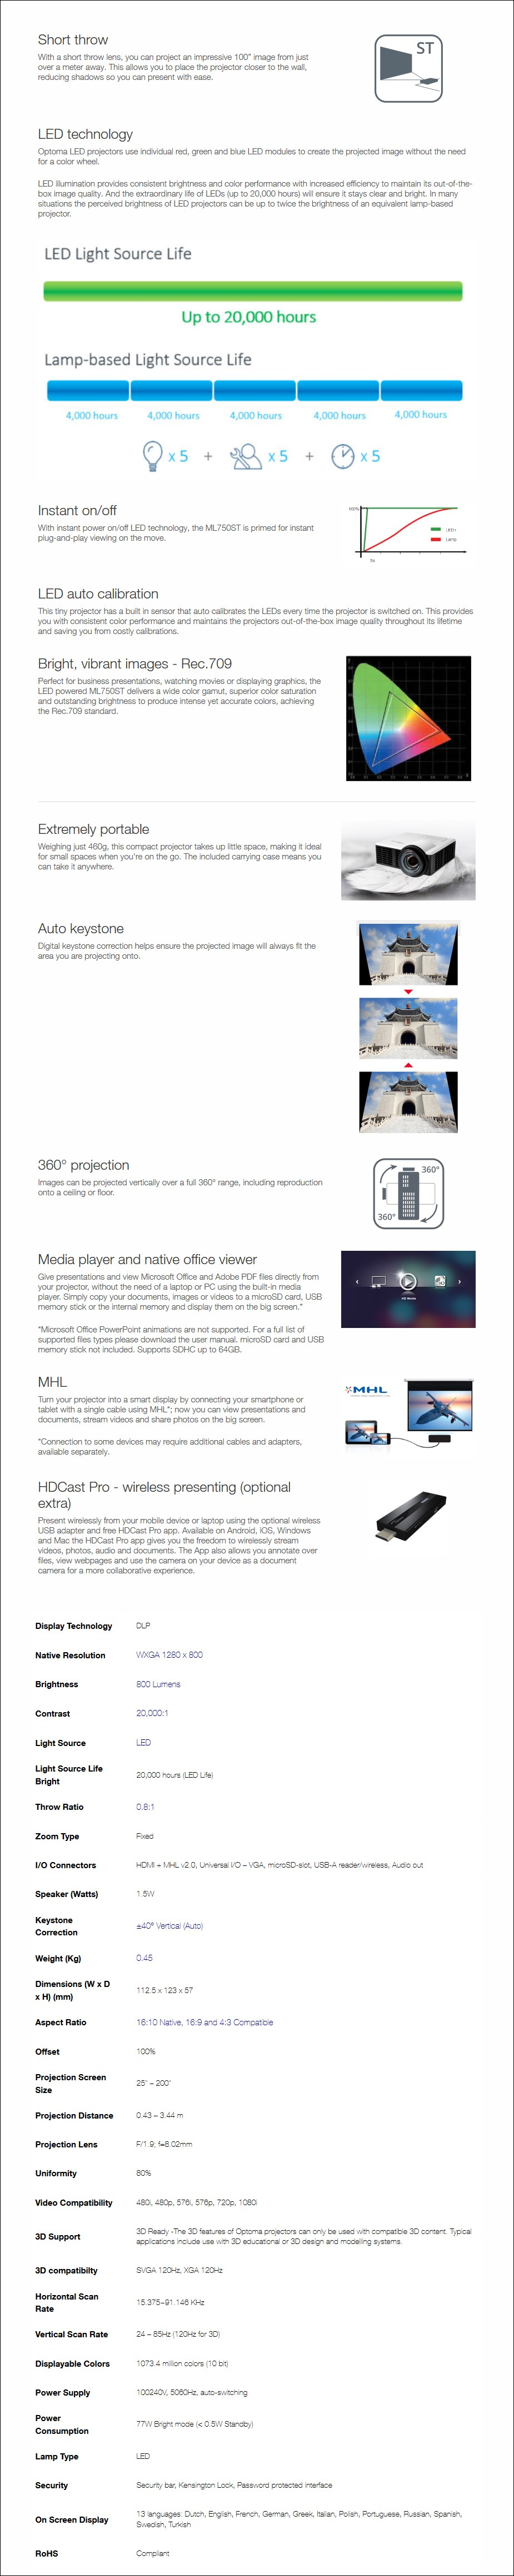 Optoma ML750ST WXGA 800 Lumens Short Throw Compact LED Projector - Overview 1